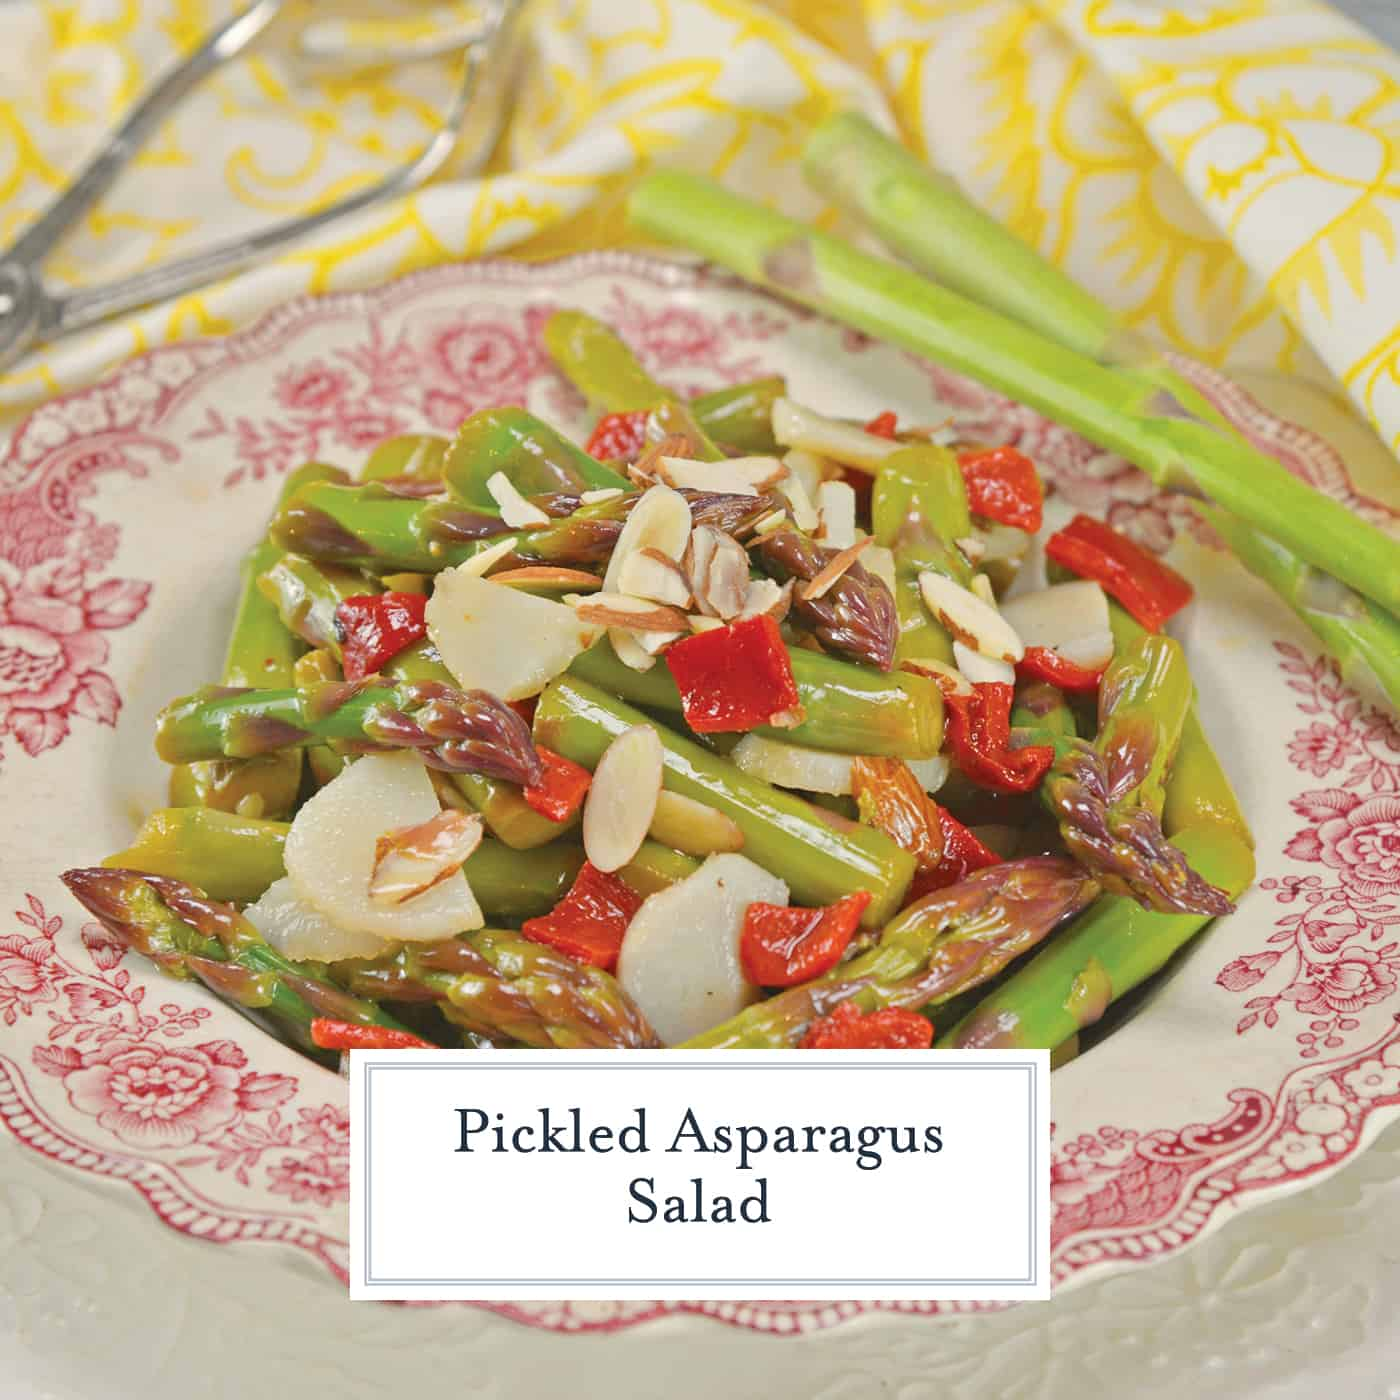 Pickled Asparagus Salad is made with blanched asparagus marinated in a vinaigrette and tossed with water chestnuts, roasted red pepper and almonds. #asparagussalad #pickledasparagus www.savoryexperiments.com